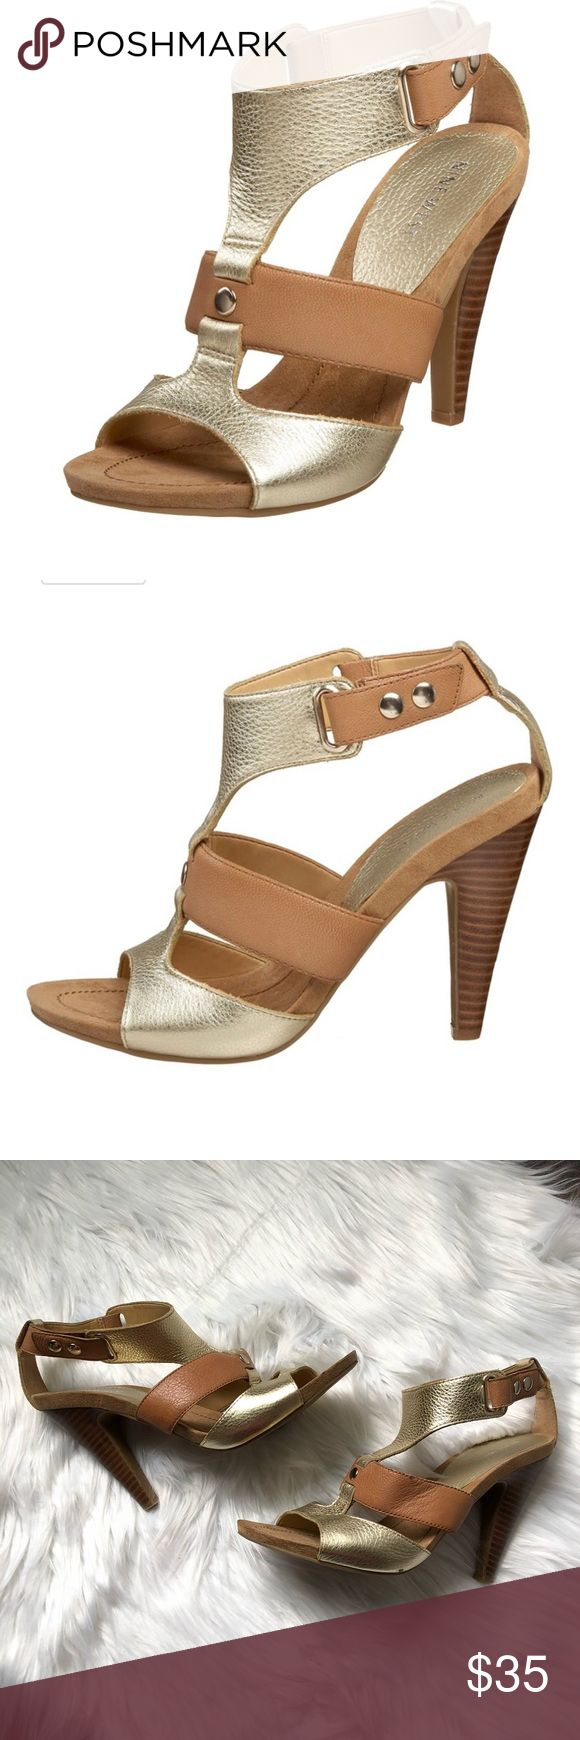 """Nine West Gold Tan Strappy Heeled Sandals Like new! Nine West """"Shoesnoop"""" gold and tan leather sandals with 4"""" heel. Rubber sole. No trades, offers welcome. Bundle and save! Nine West Shoes Heels"""